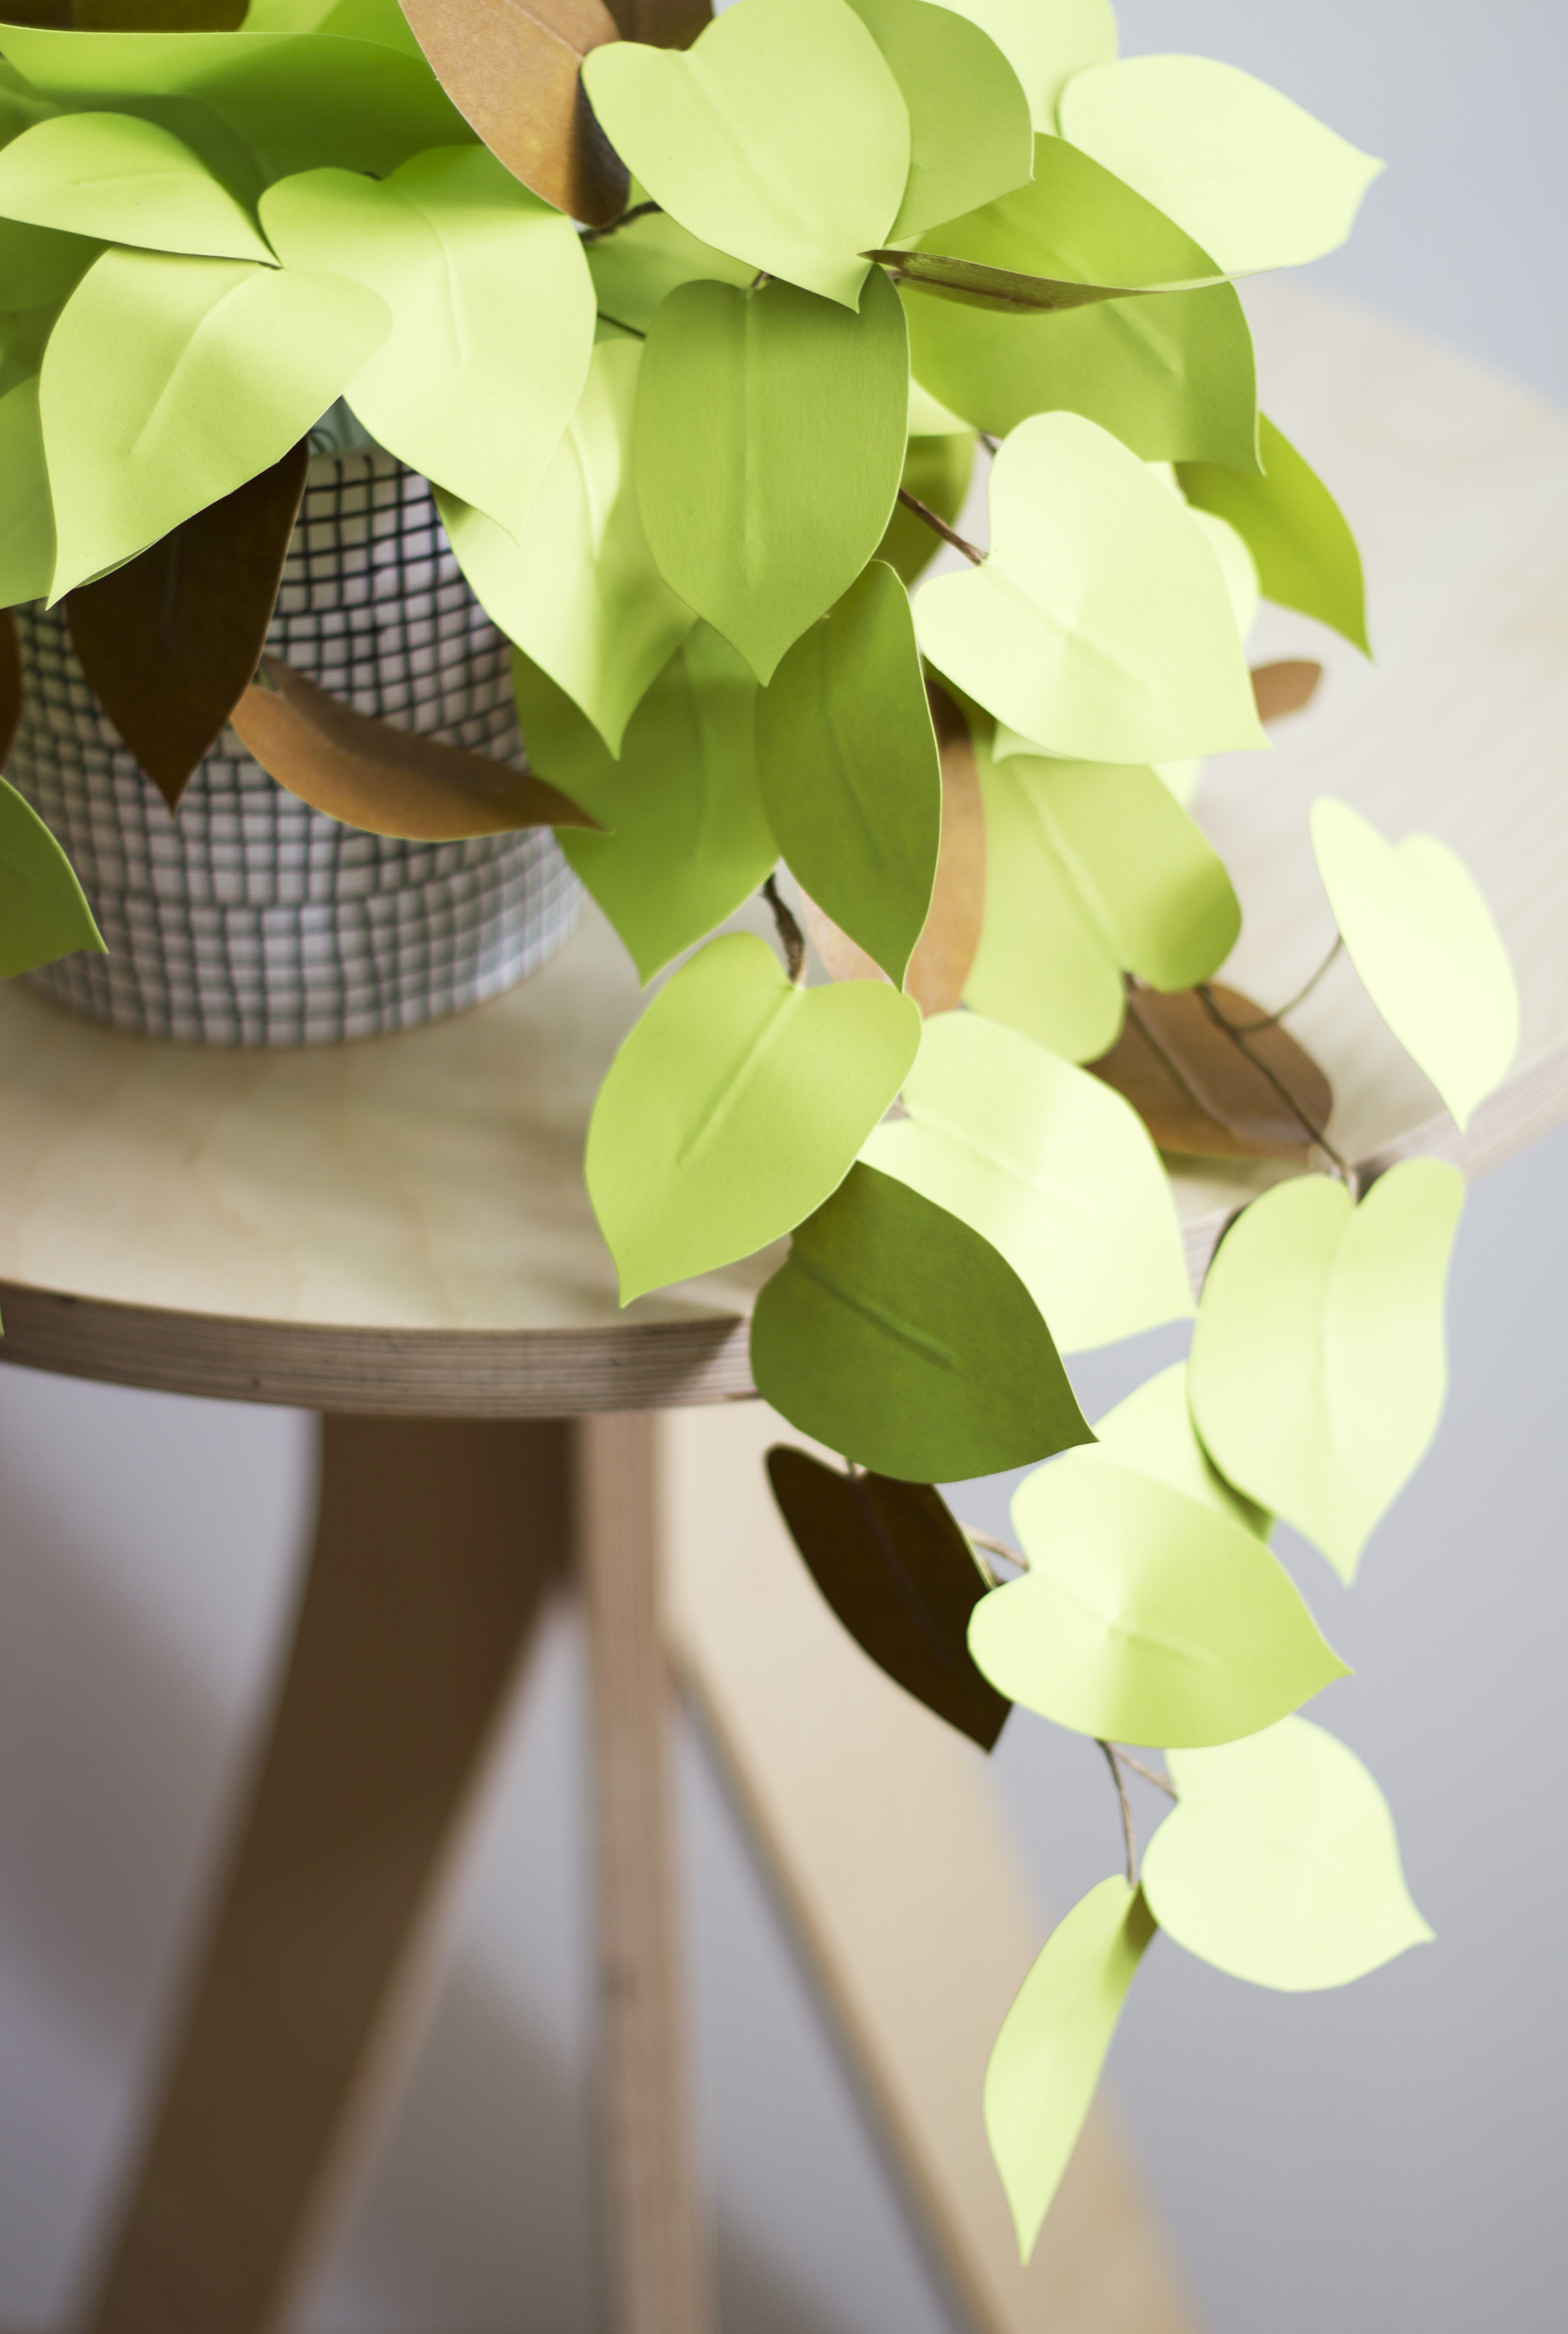 Corrie_Hogg_paper_heartleaf_philodendron_plant_DIY_5.jpg